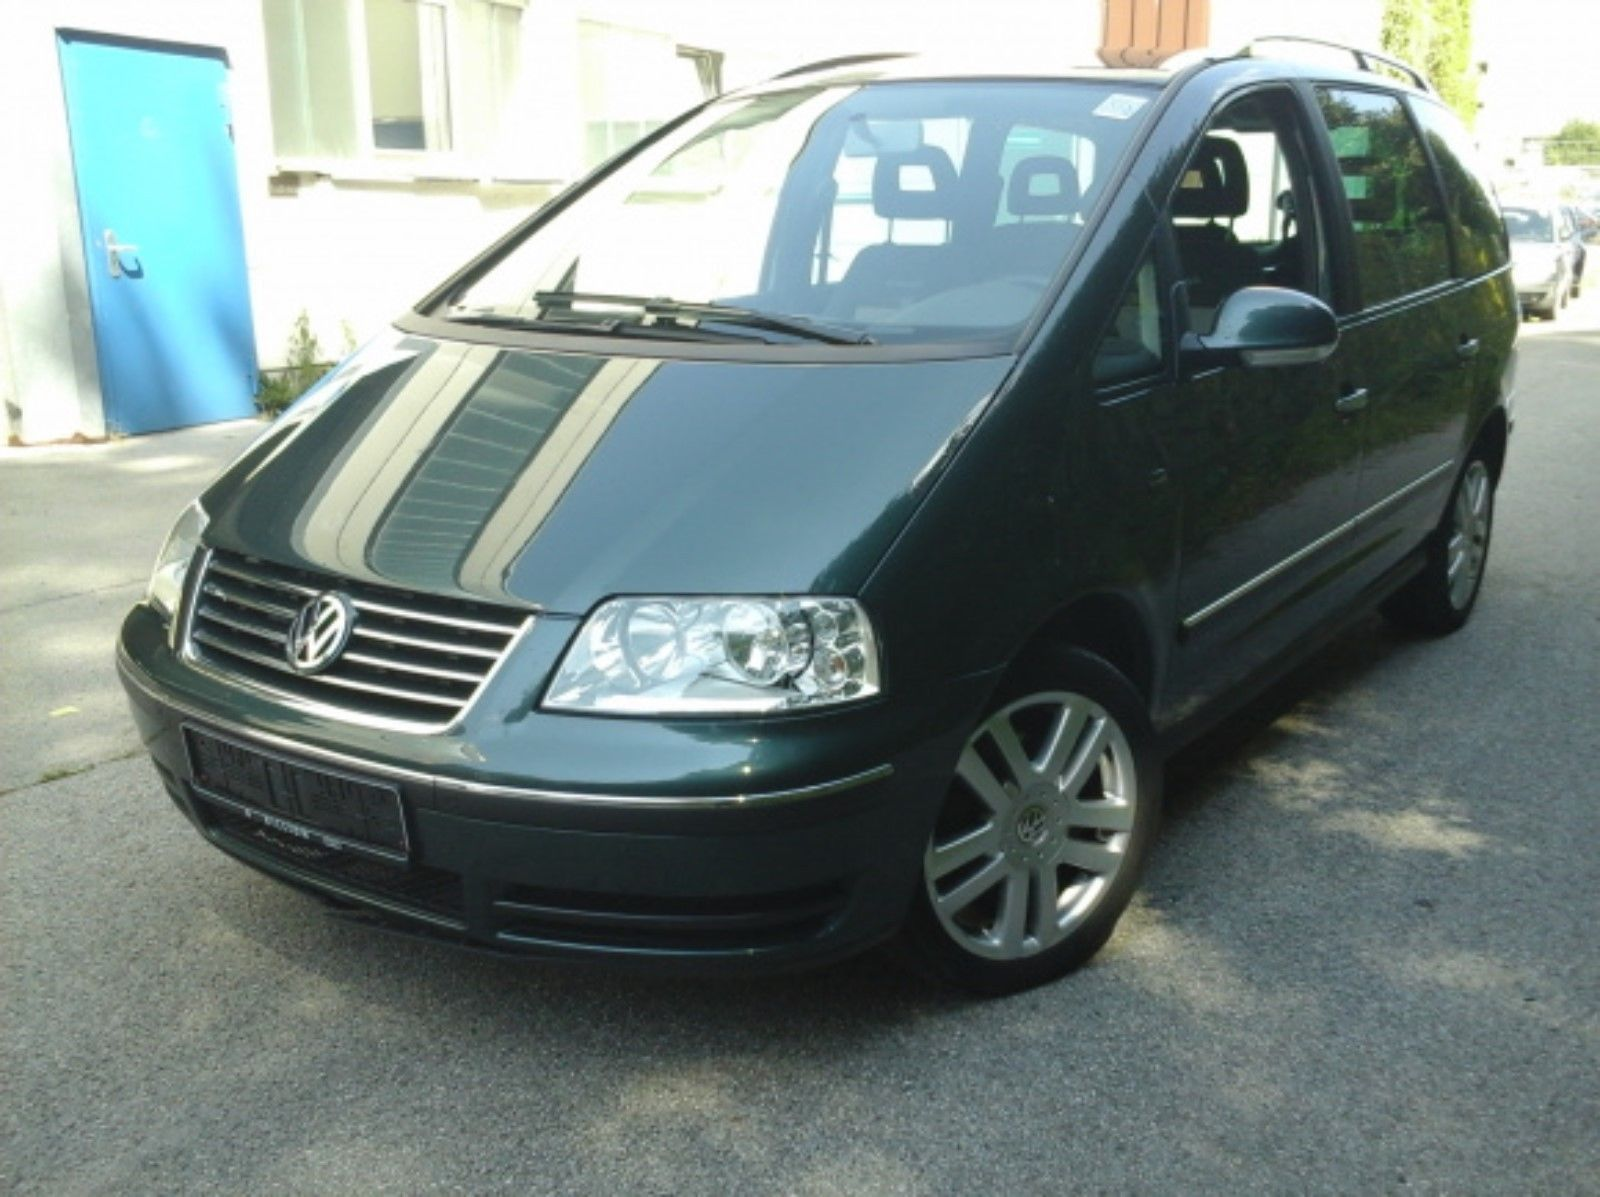 VW Sharan 1.9 tdi Freestyle